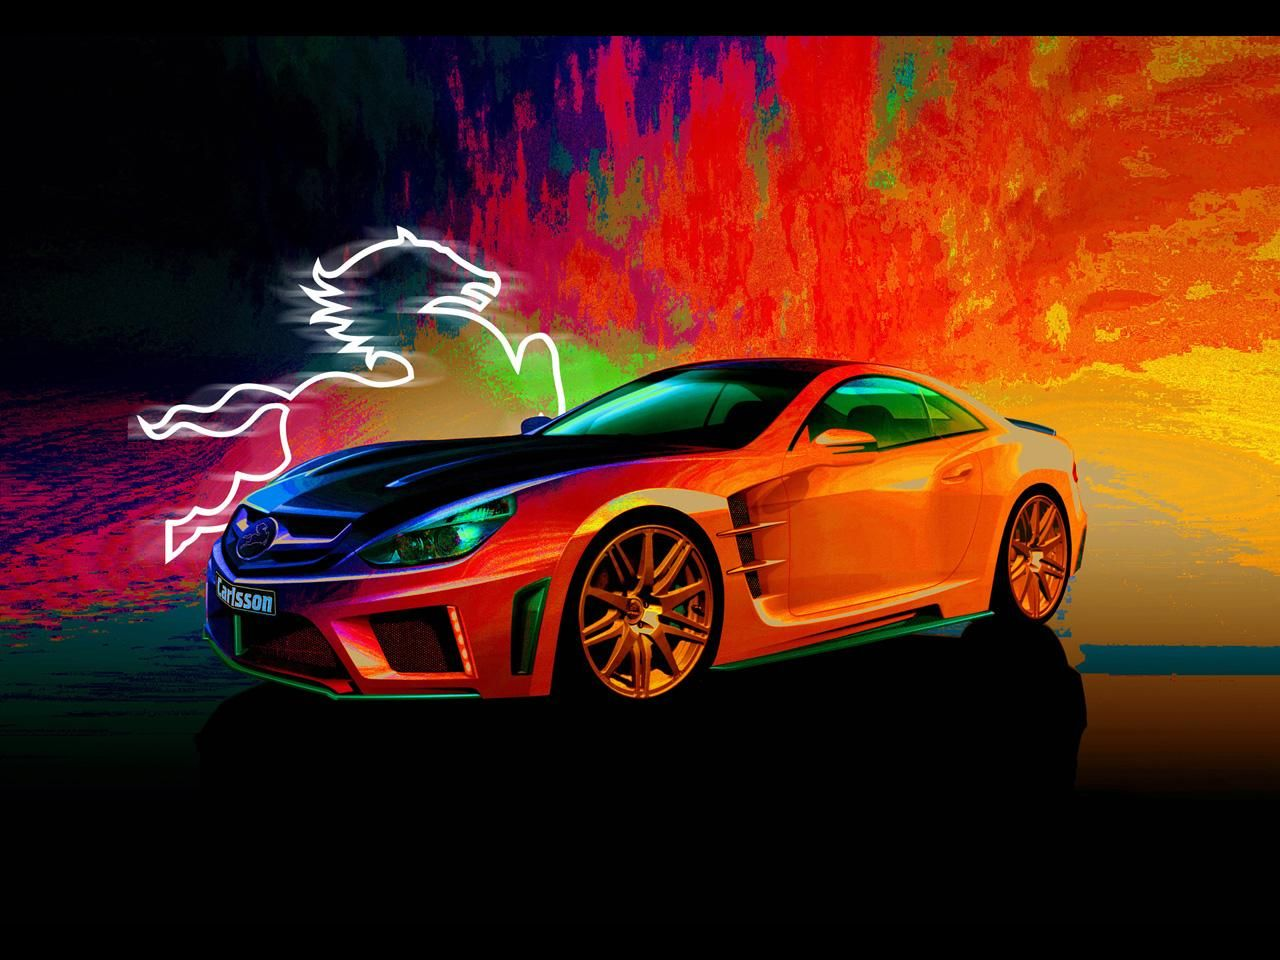 Whoa Awesome Car Car Backgrounds Cool Car Pictures Cool Car